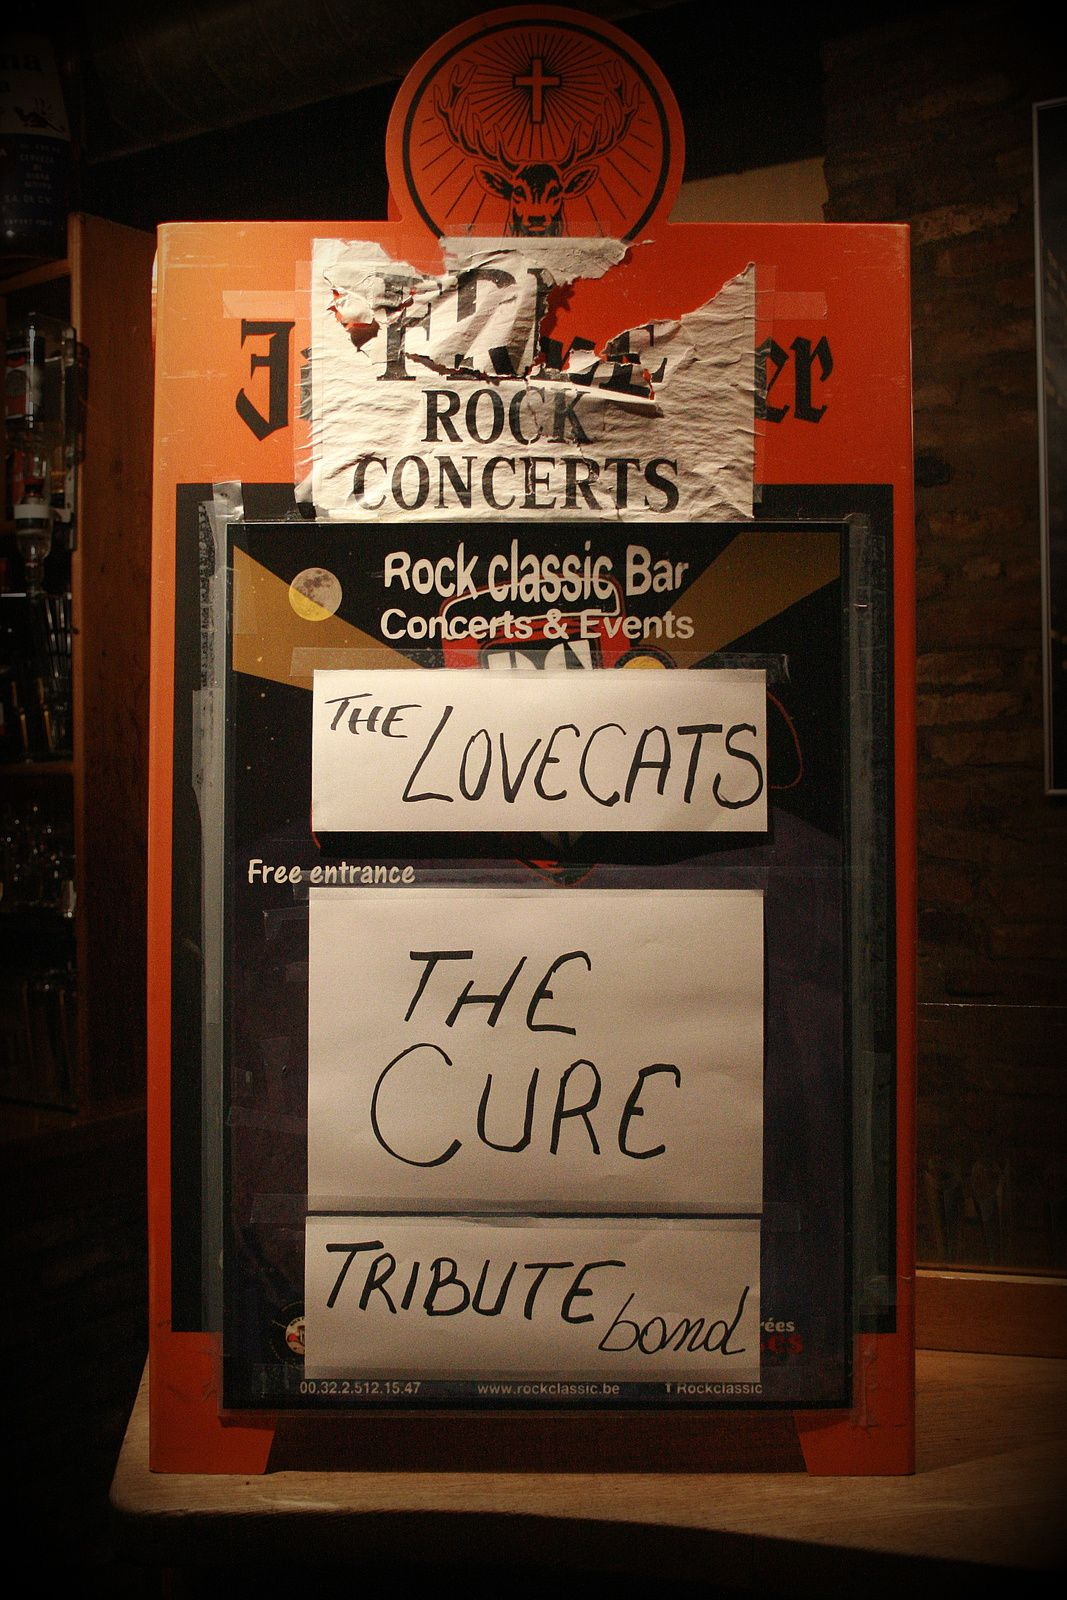 The Lovecats (Tribute band to THE CURE) @ Rock Classic - 19/12/2015